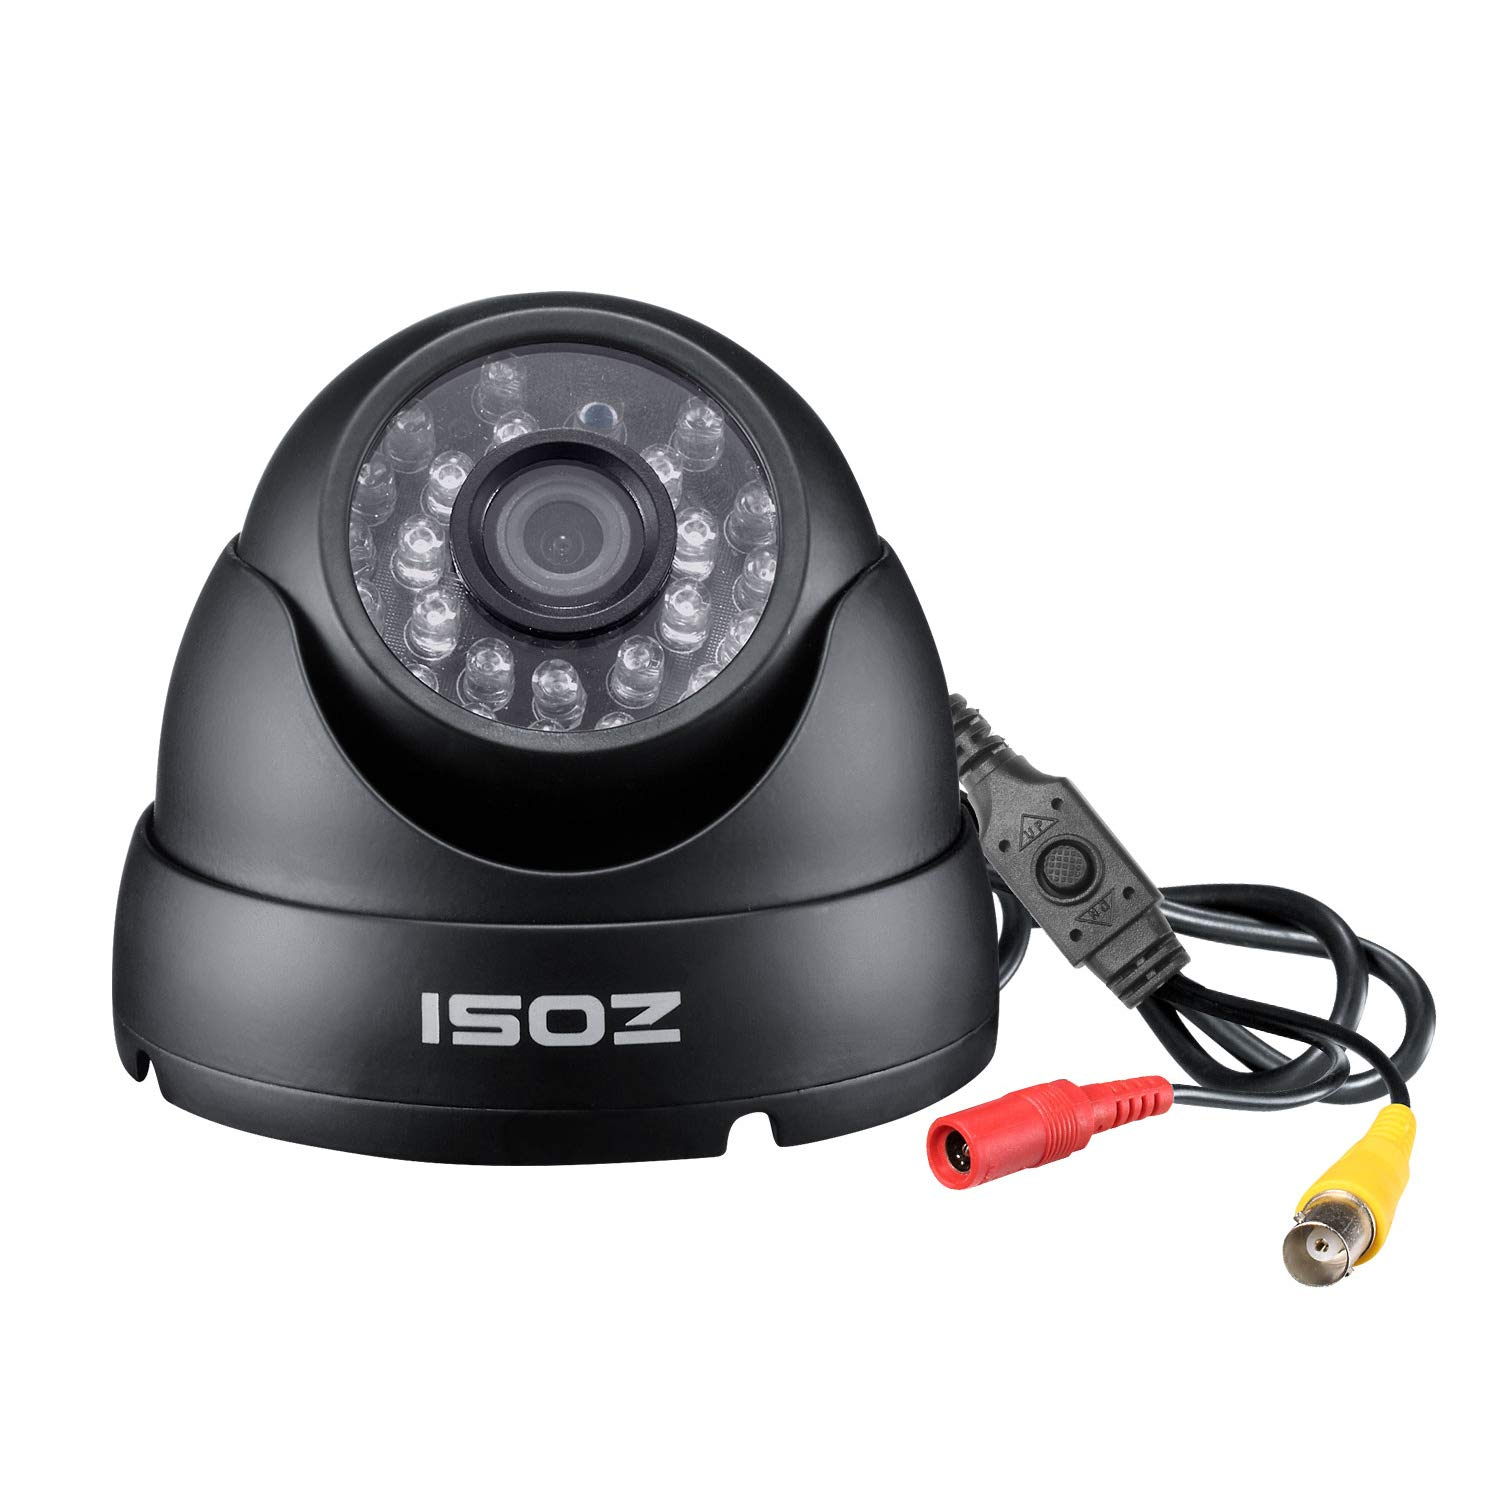 ZOSI 2.0MP FHD 1080p Dome Camera Housing Outdoor Indoor (Hybrid 4-in-1 CVI/TVI/AHD/960H Analog CVBS),24PCS LEDs,65ft IR Night Vision,CCTV Security Camera with 105° Wide Angle by ZOSI